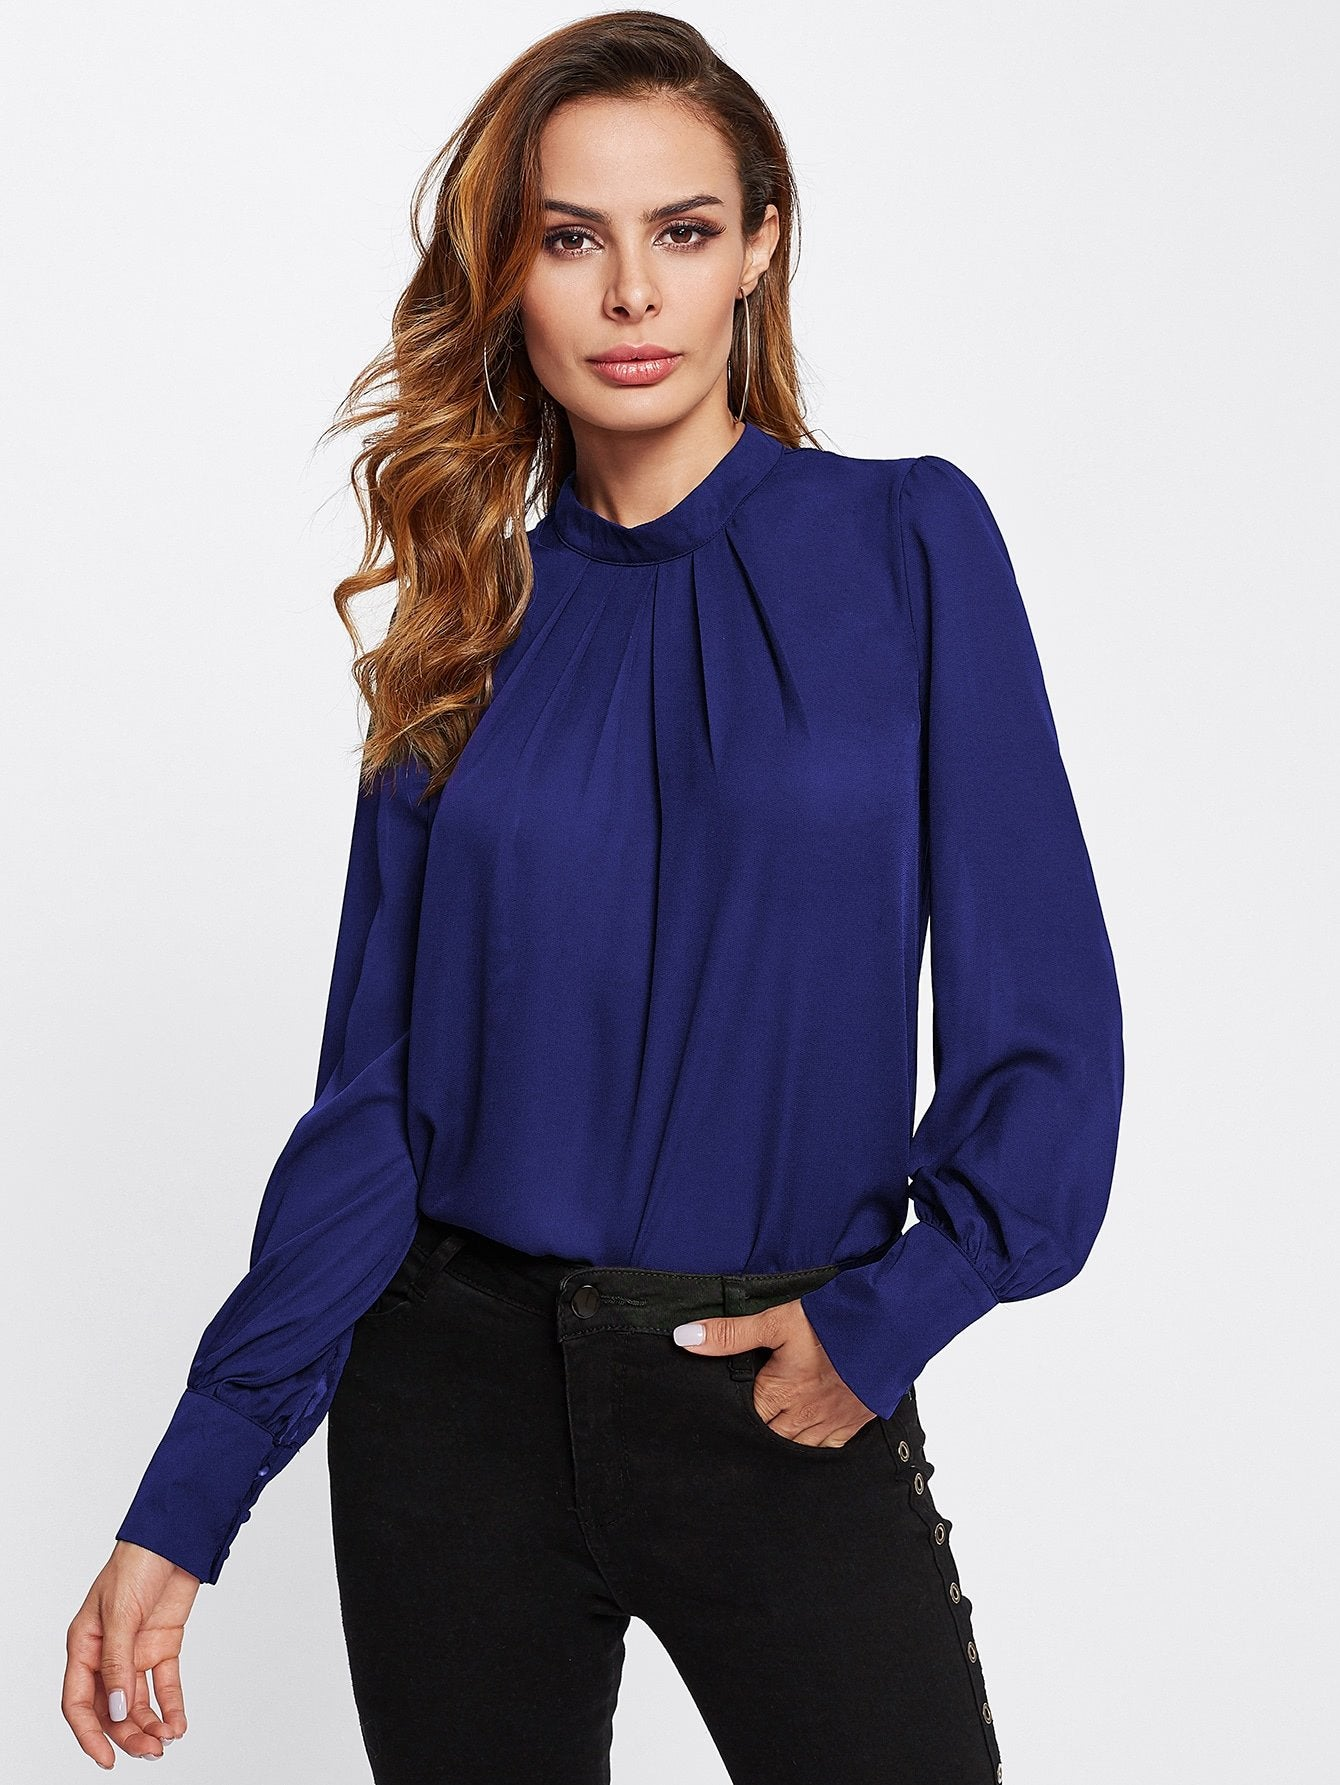 Puff Sleeve Chiffon Blouse - LoveSylvester